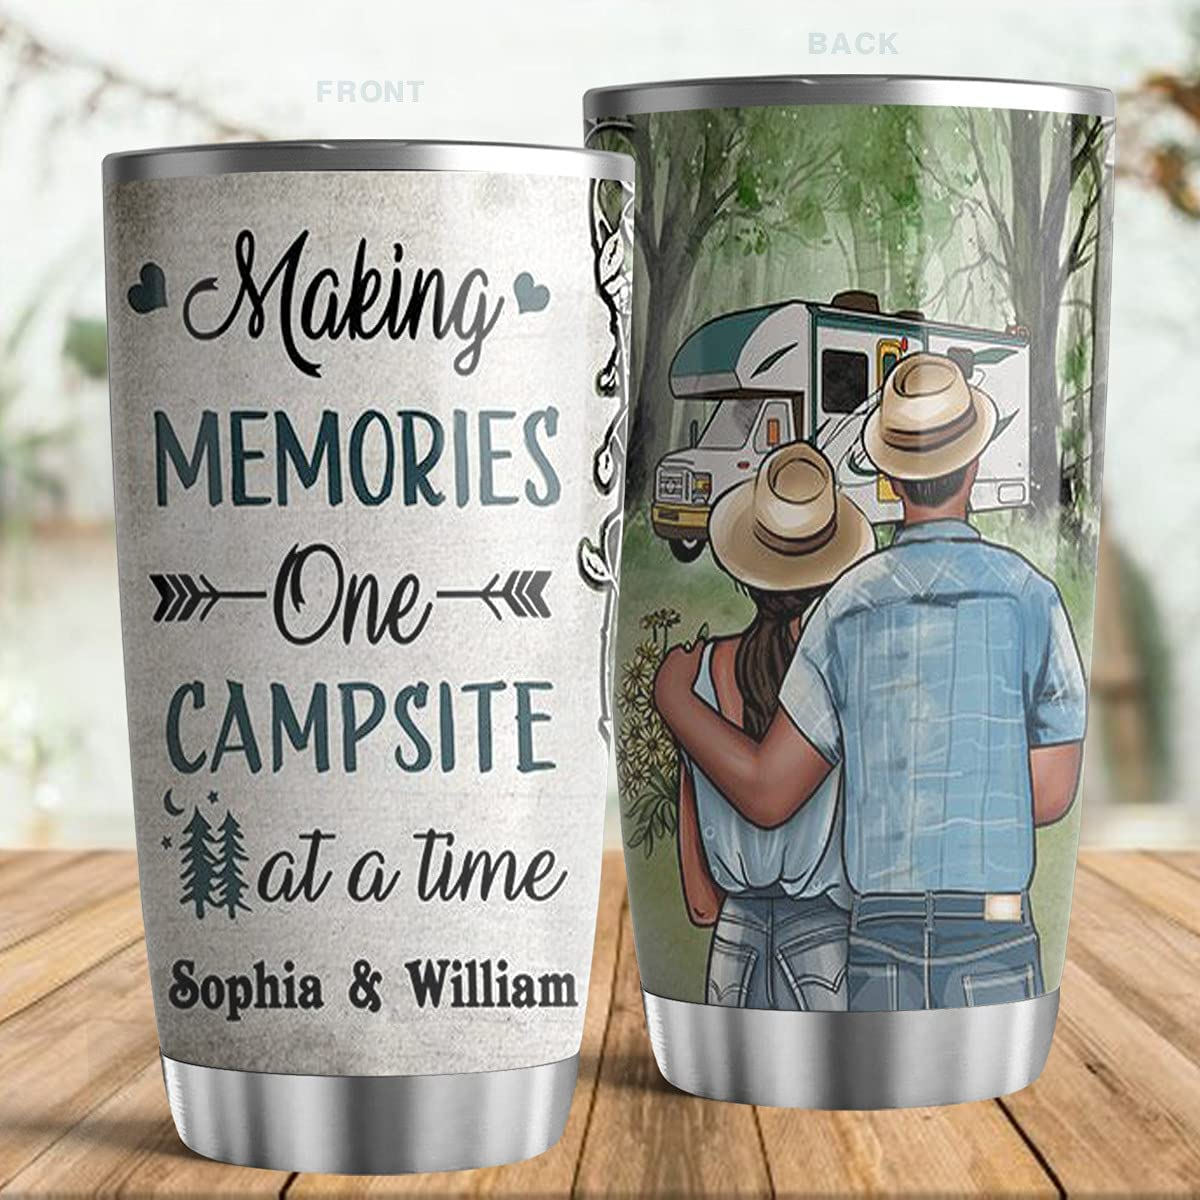 LeeGifts Personalized Camping Young Making Couple Max 52% OFF Custo Memories NEW